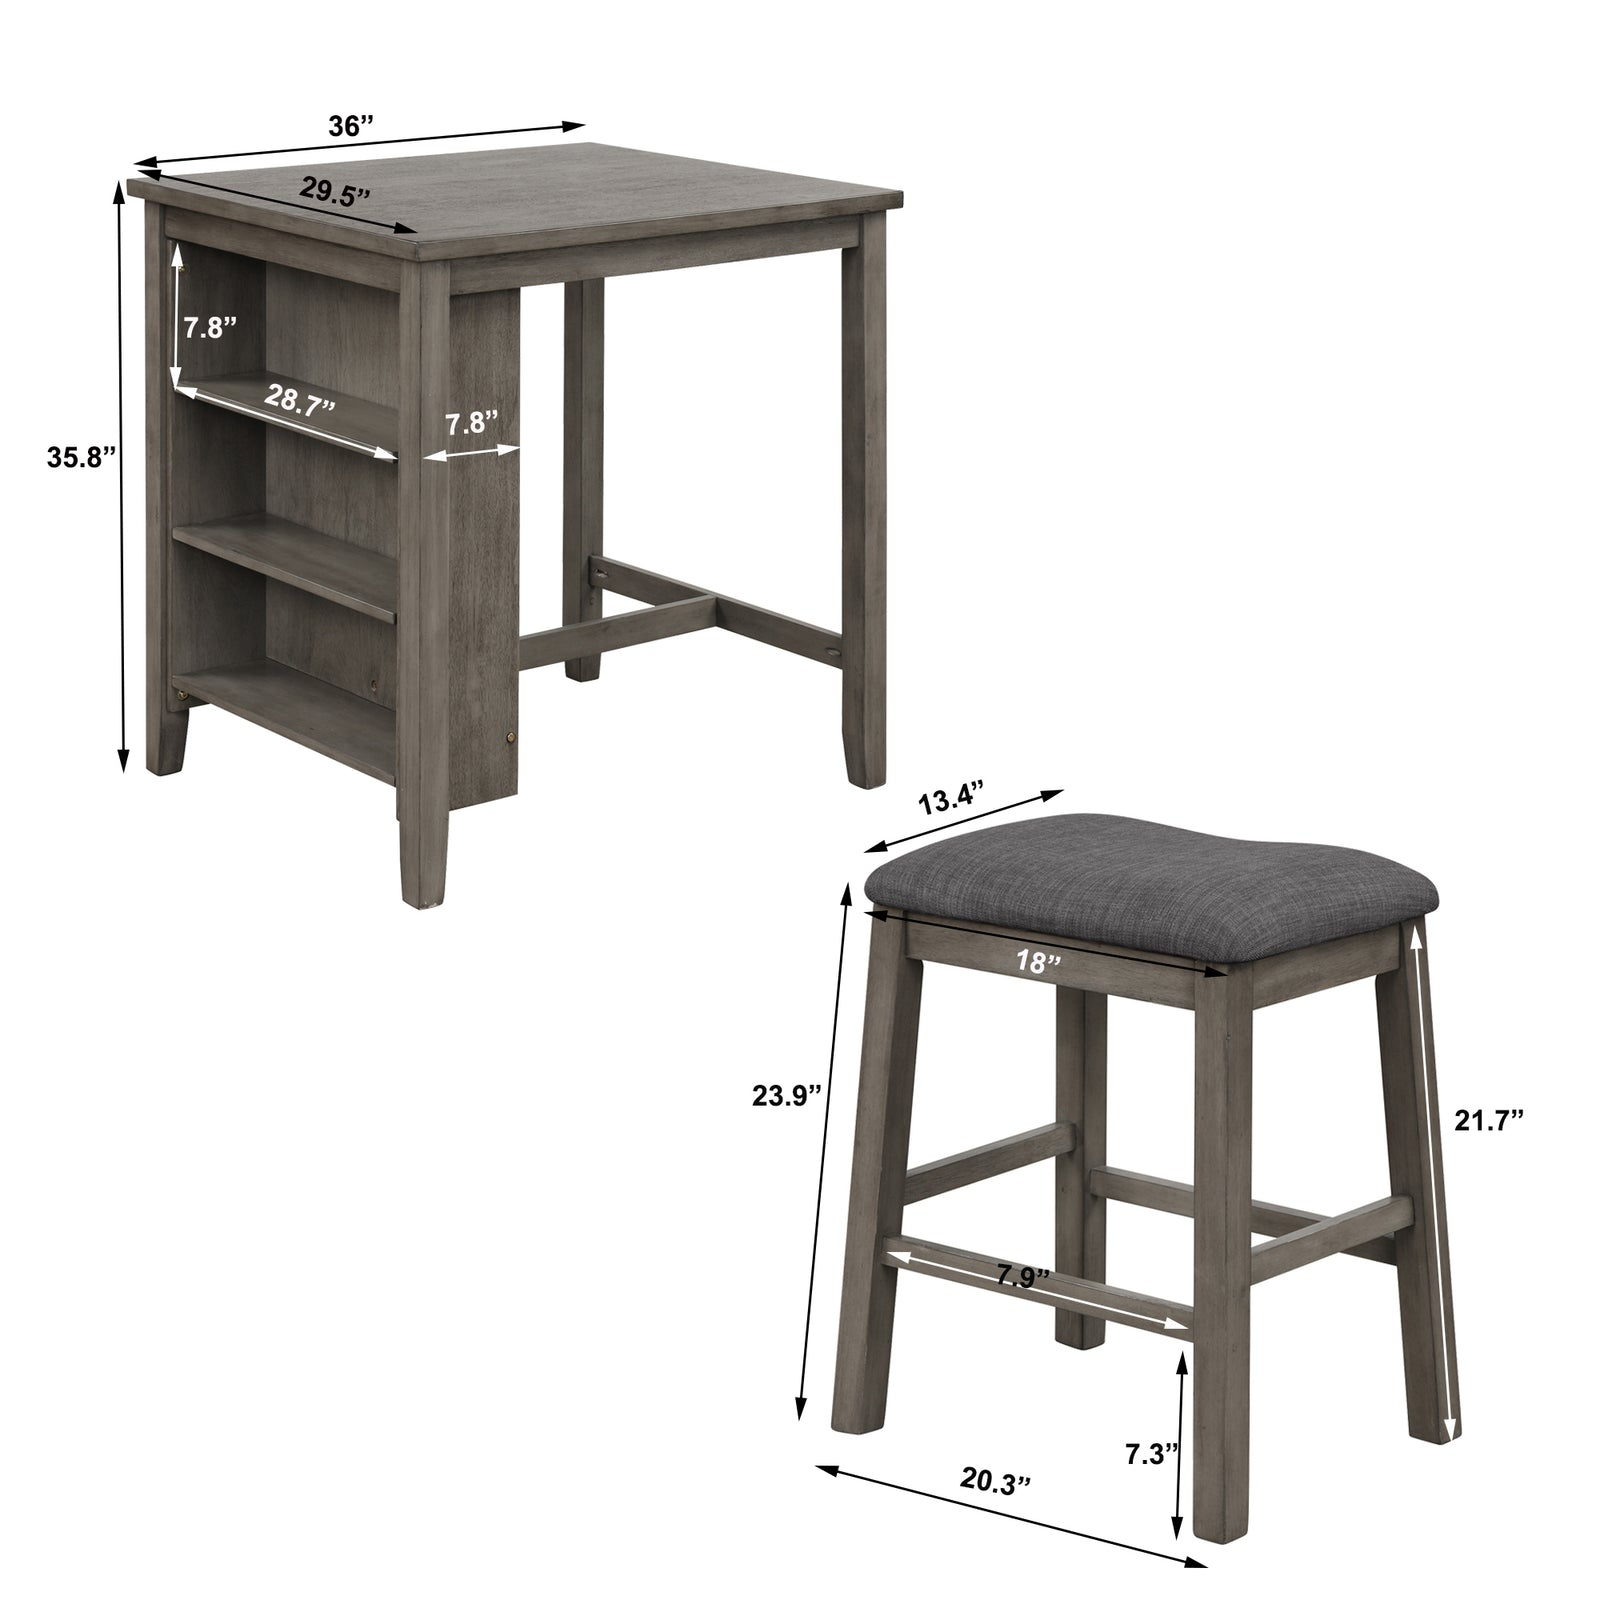 3 Counts - Square Dining Table with Padded Stools, Table Set with Storage Shelf Dark Gray - Size